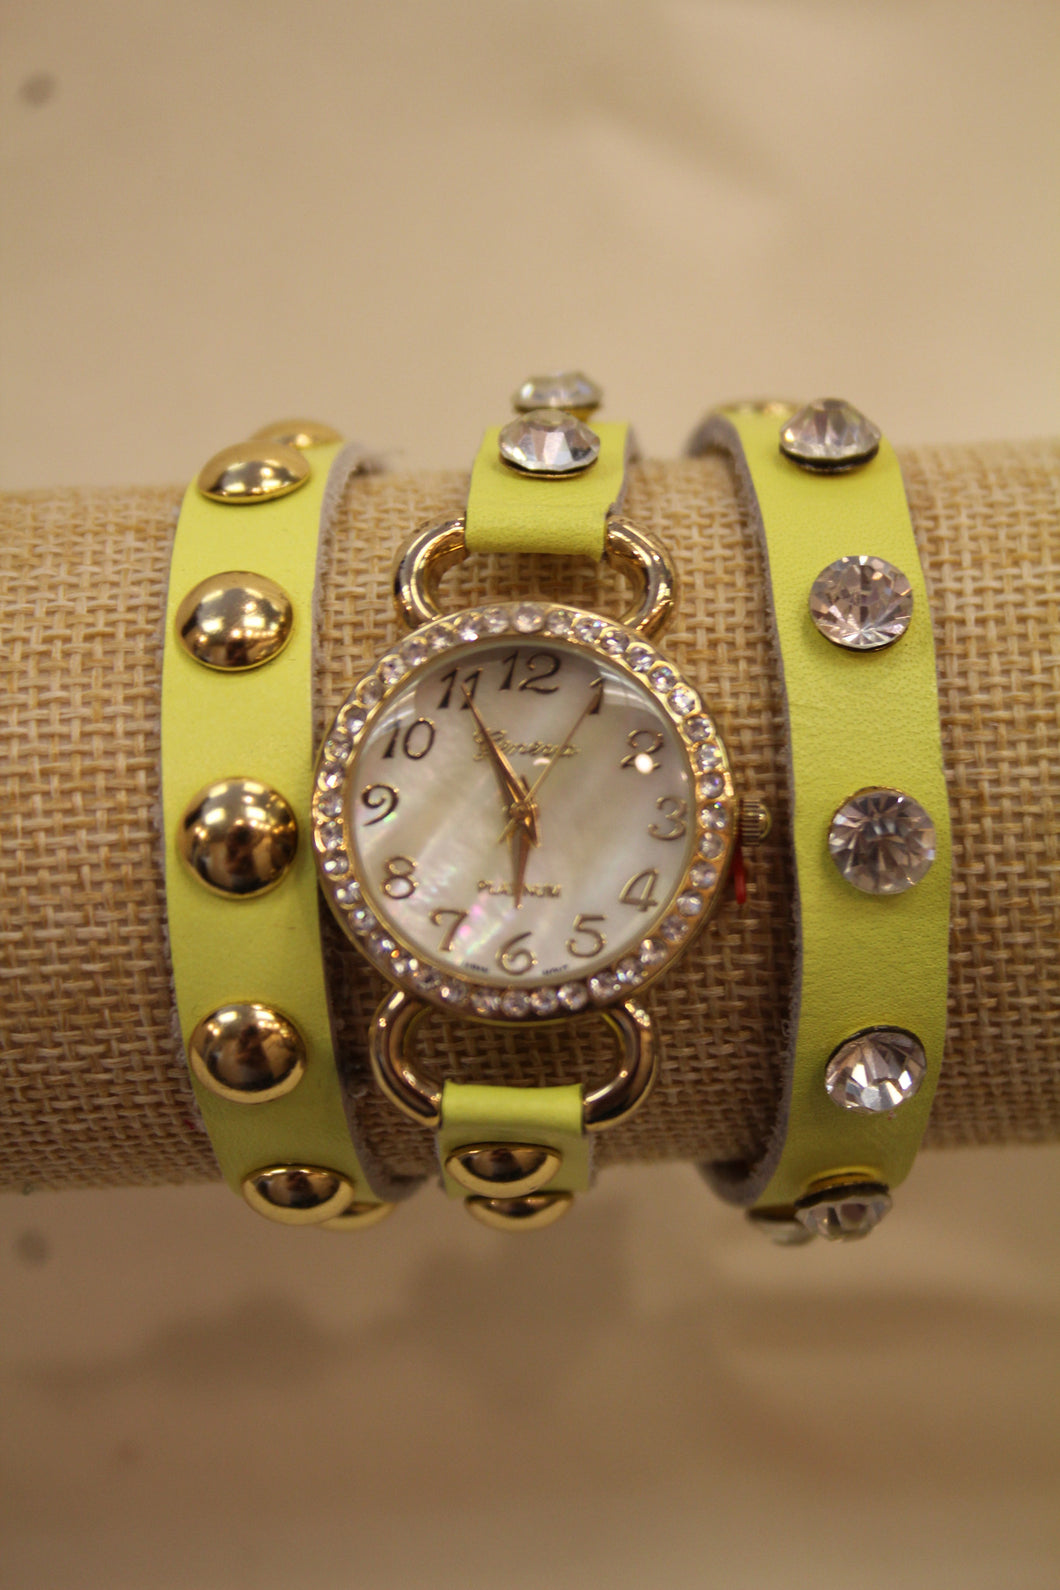 Neon Yellow/White Gold Studs & Clear Rhinestones | Leather Band w/ Button Clasp